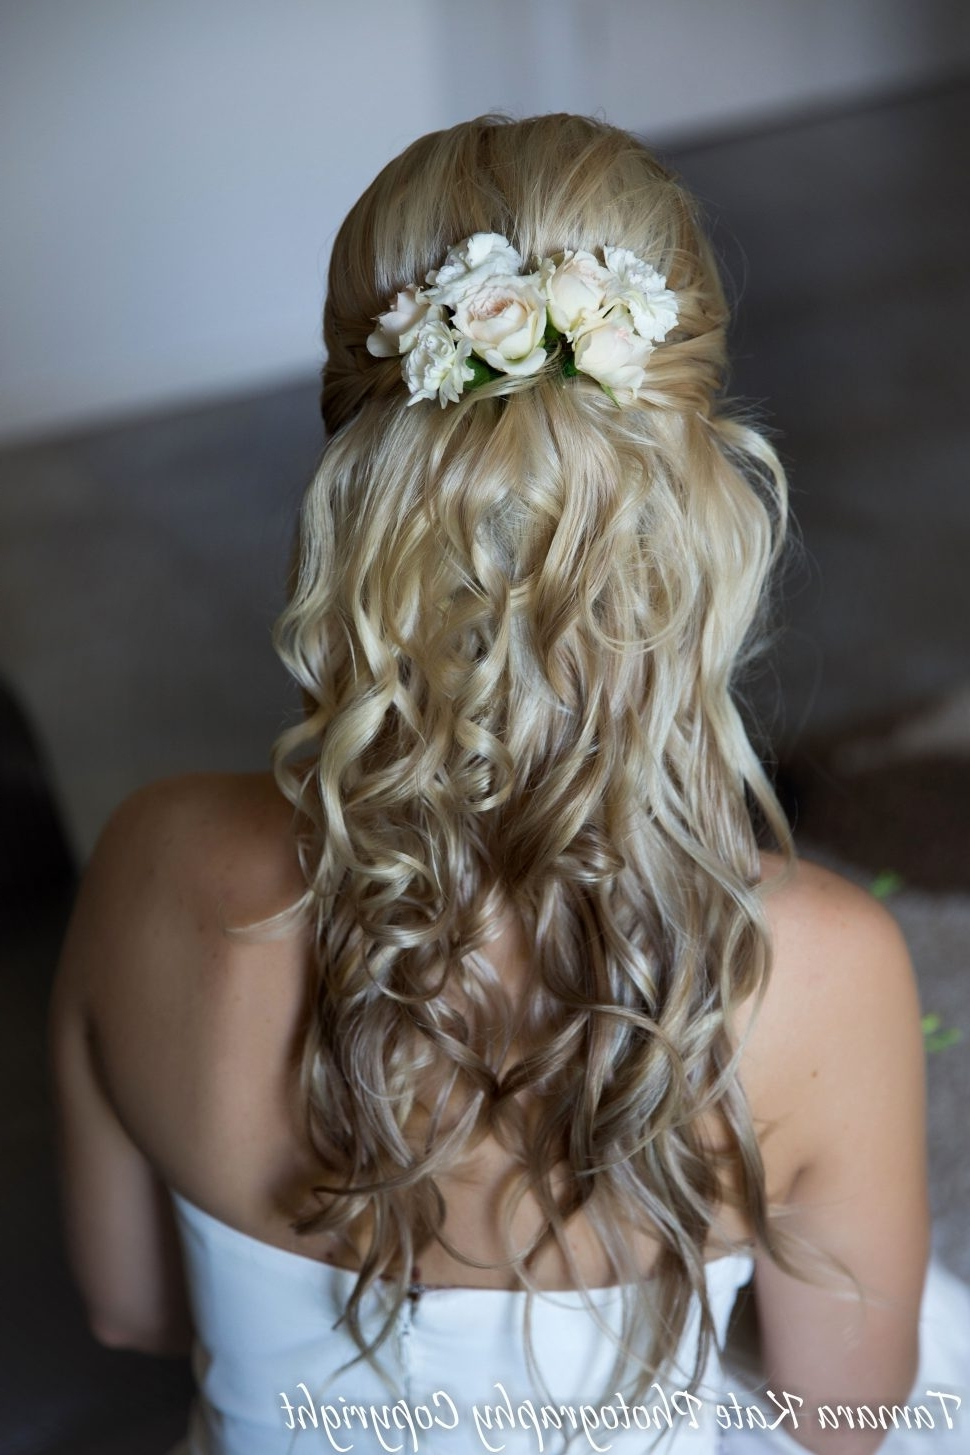 Wedding : Overstockh Wedding Hairstyles Image Concept For Throughout Most Current Beach Wedding Hairstyles For Bridesmaids (View 14 of 15)